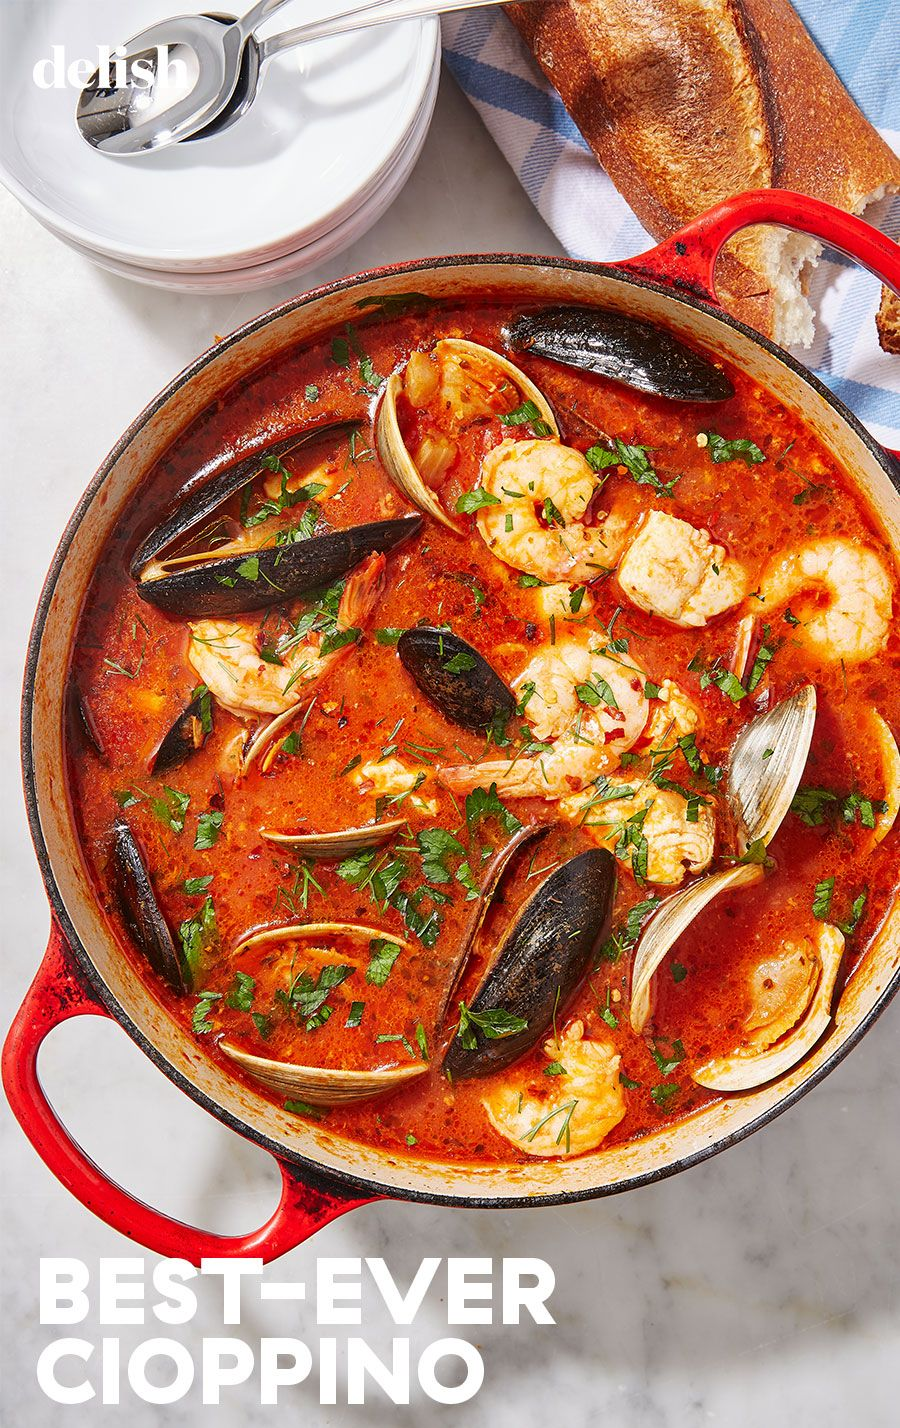 Best-Ever Cioppino